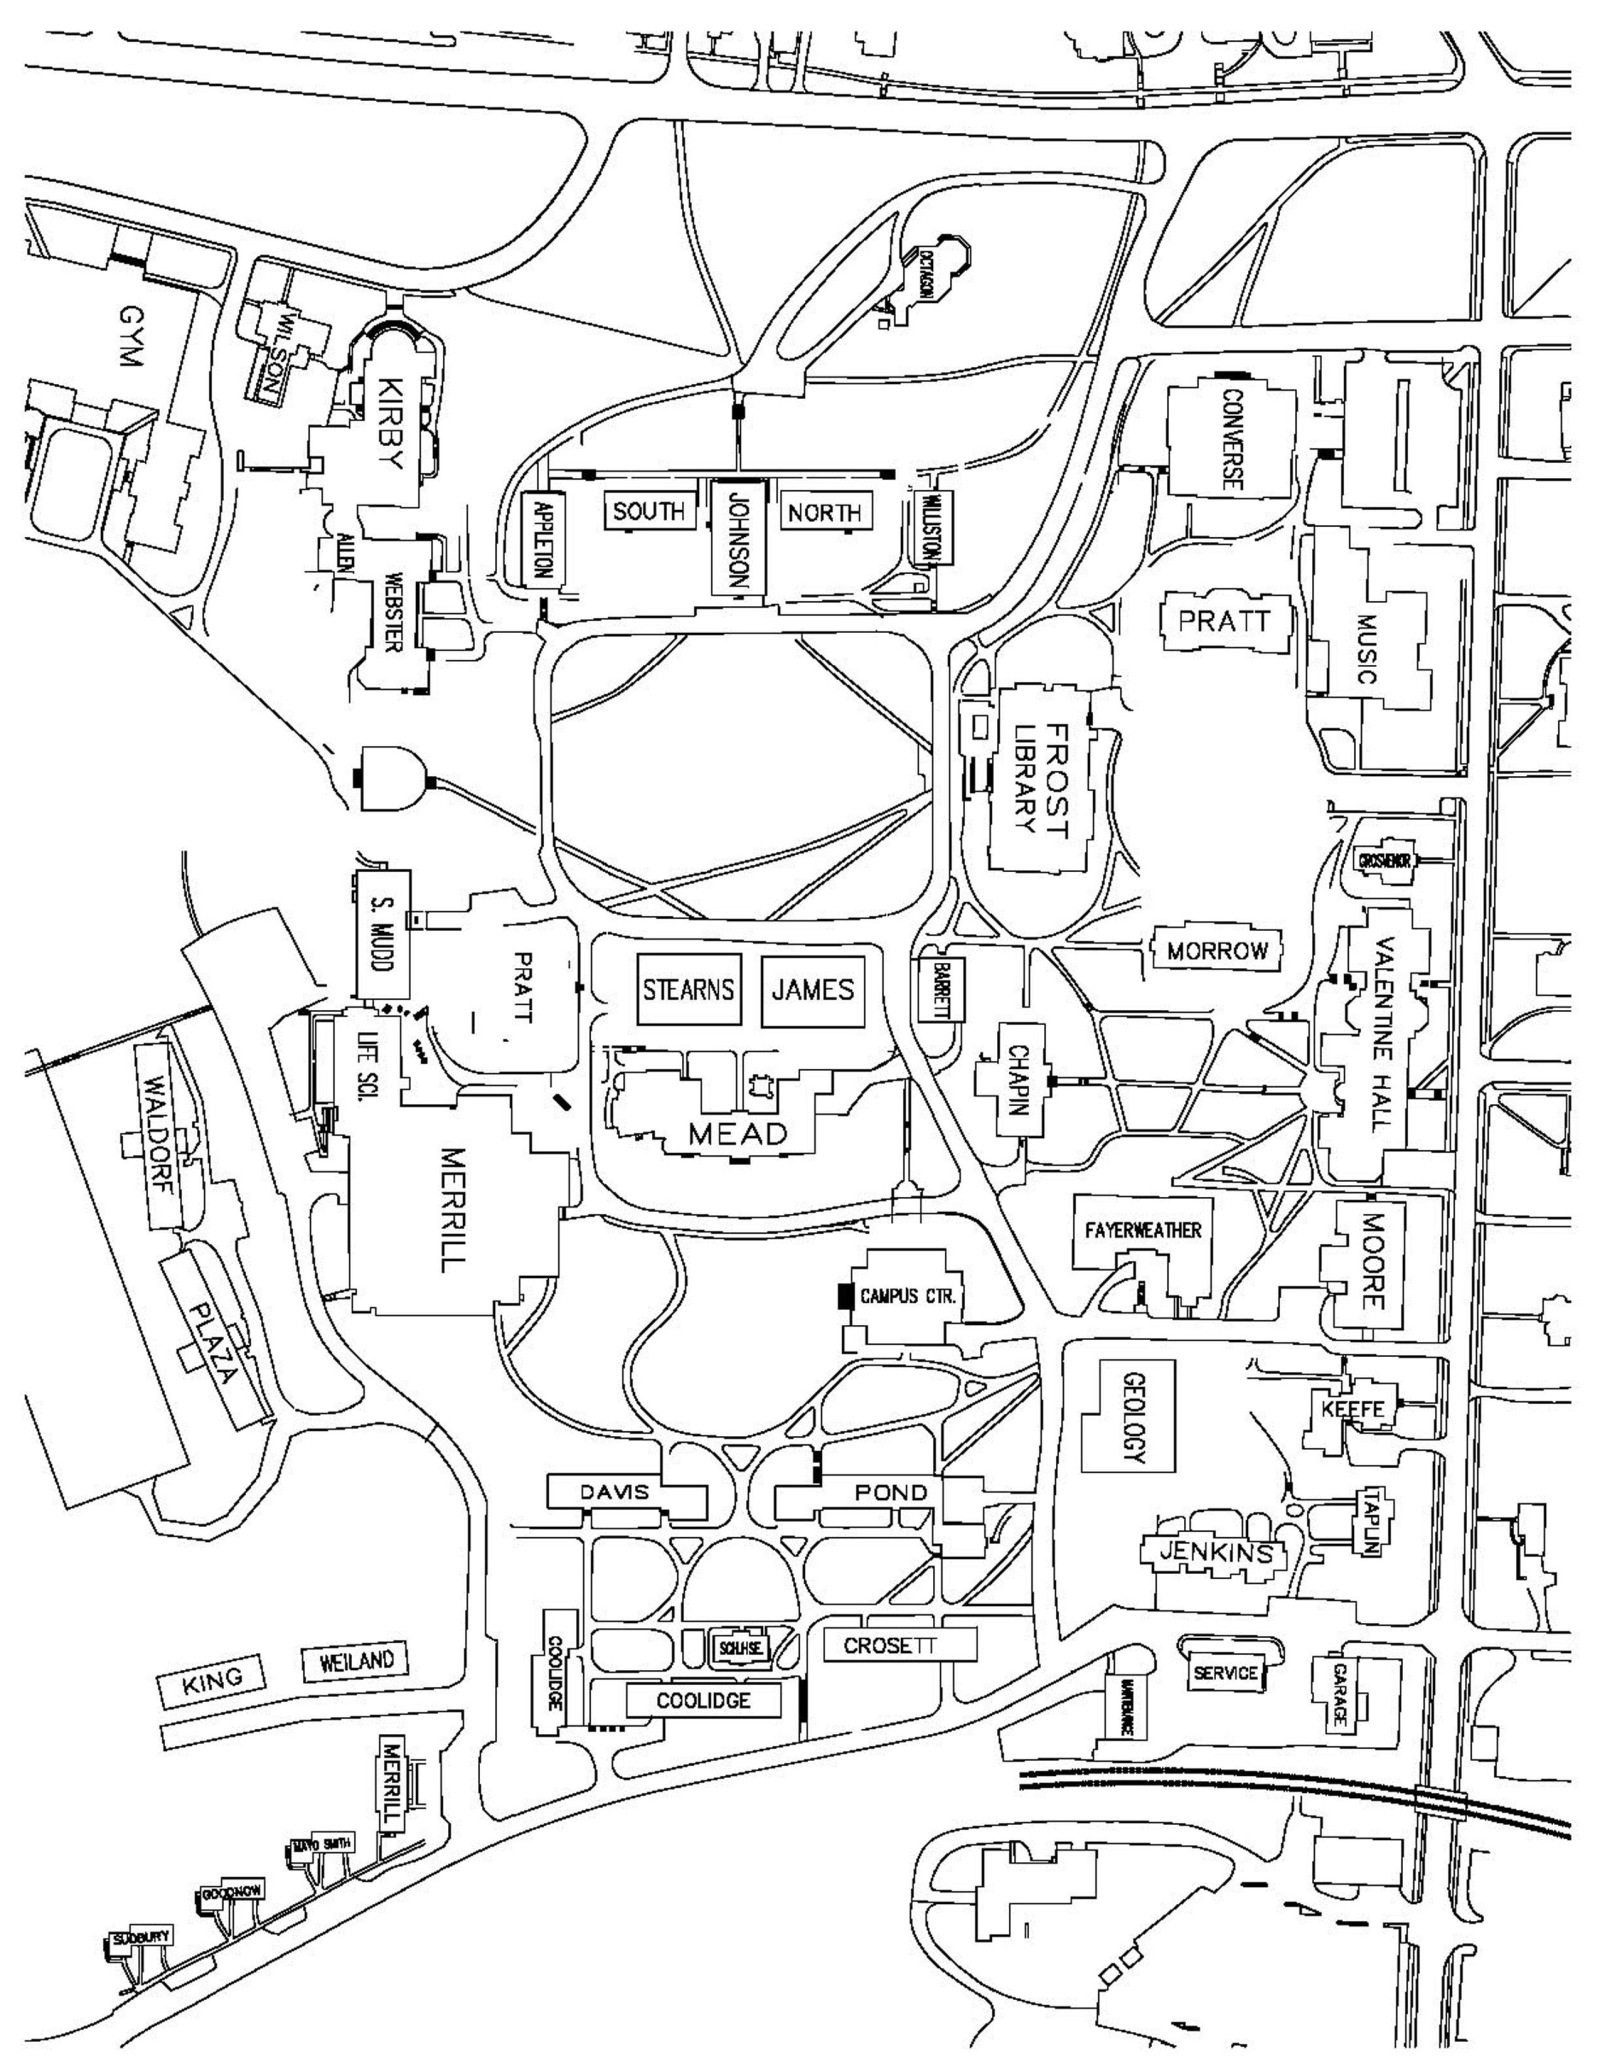 Pcc Rock Creek Campus Map